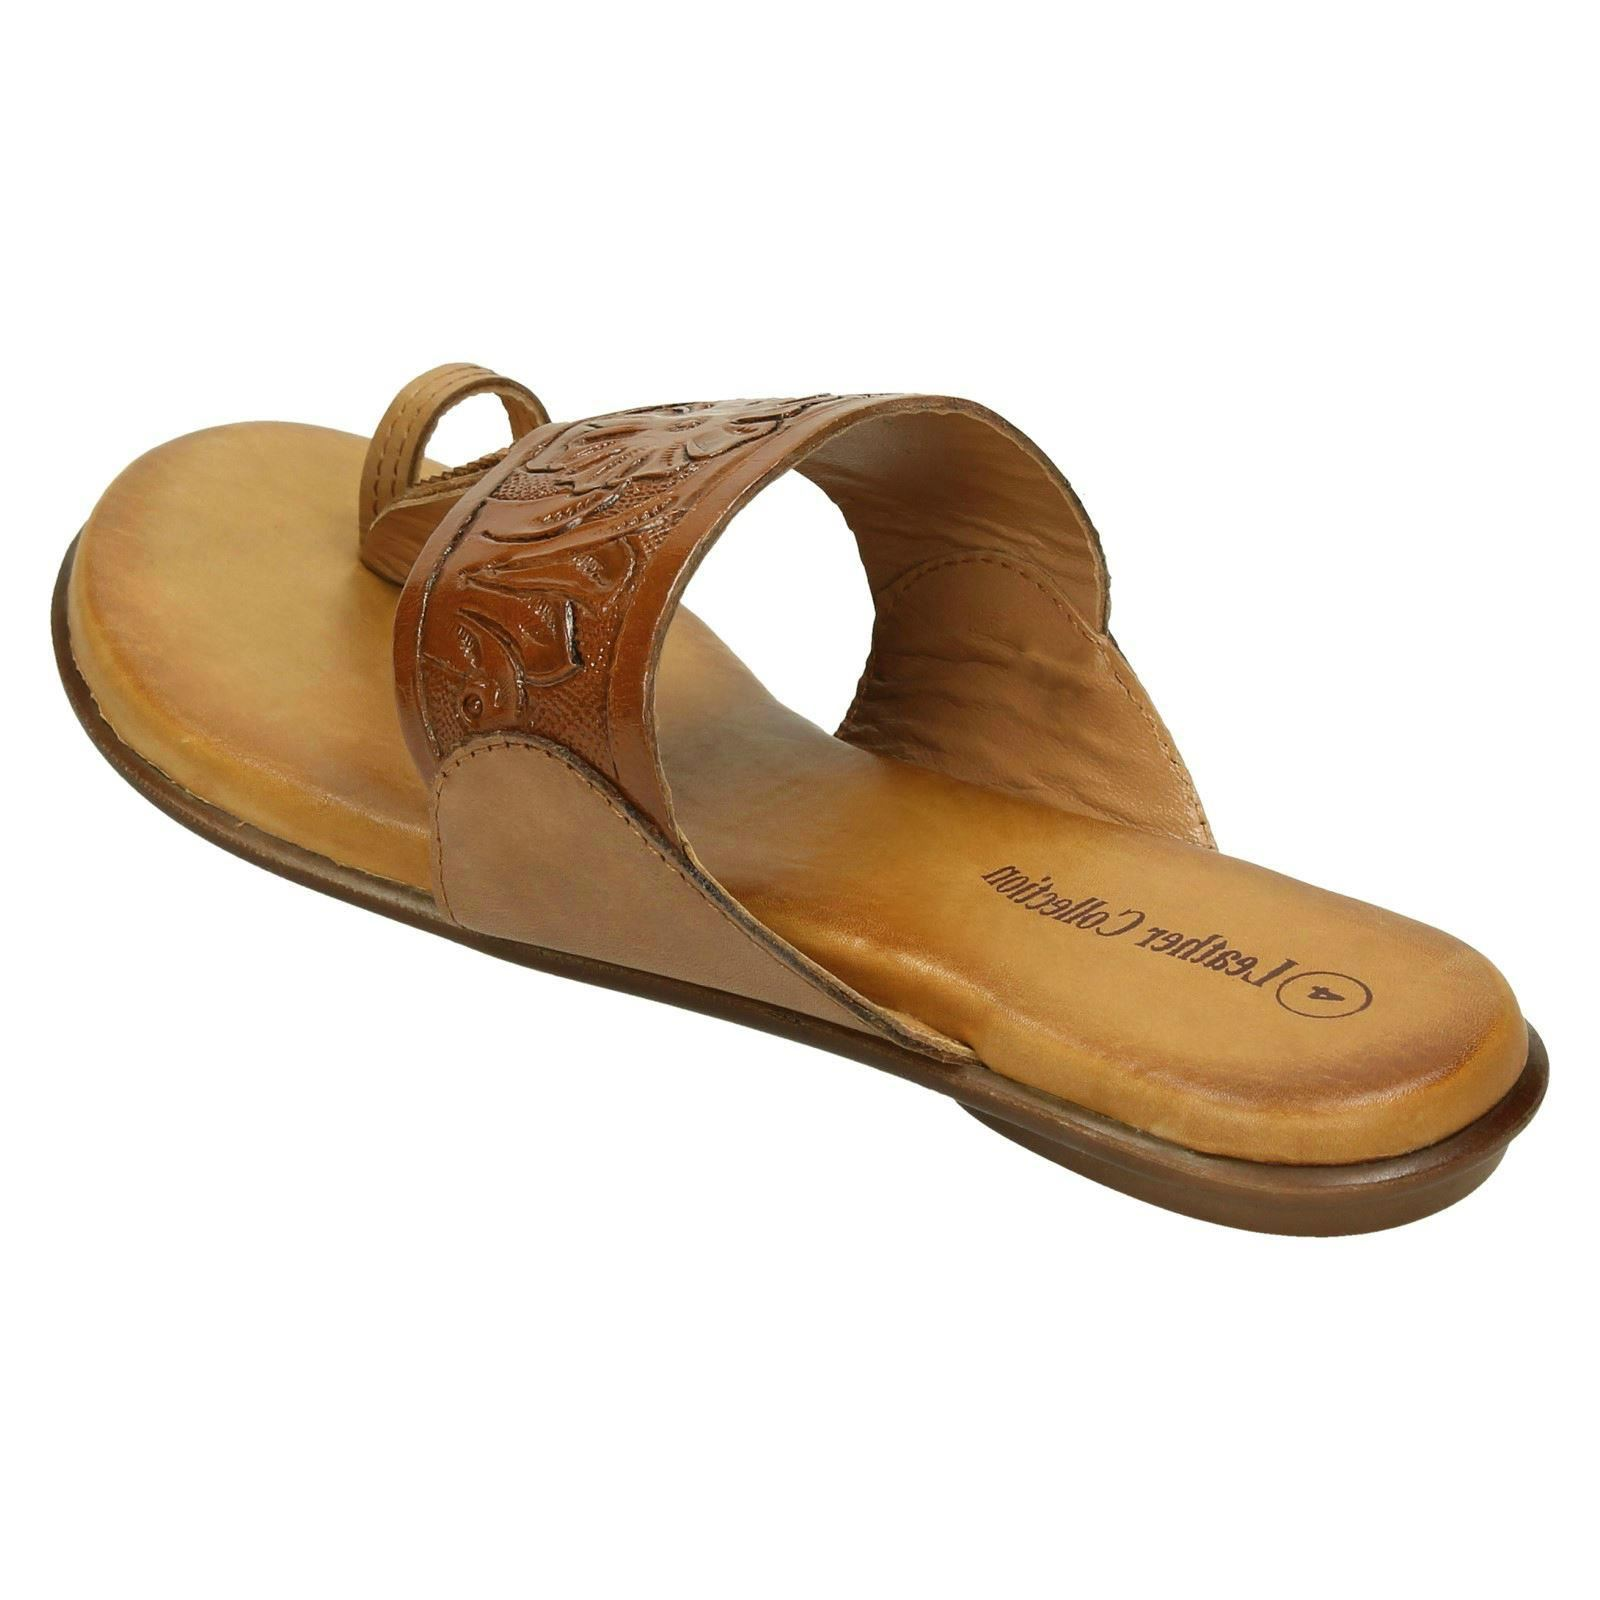 Ladies Leather Collection Flat Toe Loop Sandals F00041 Ebay